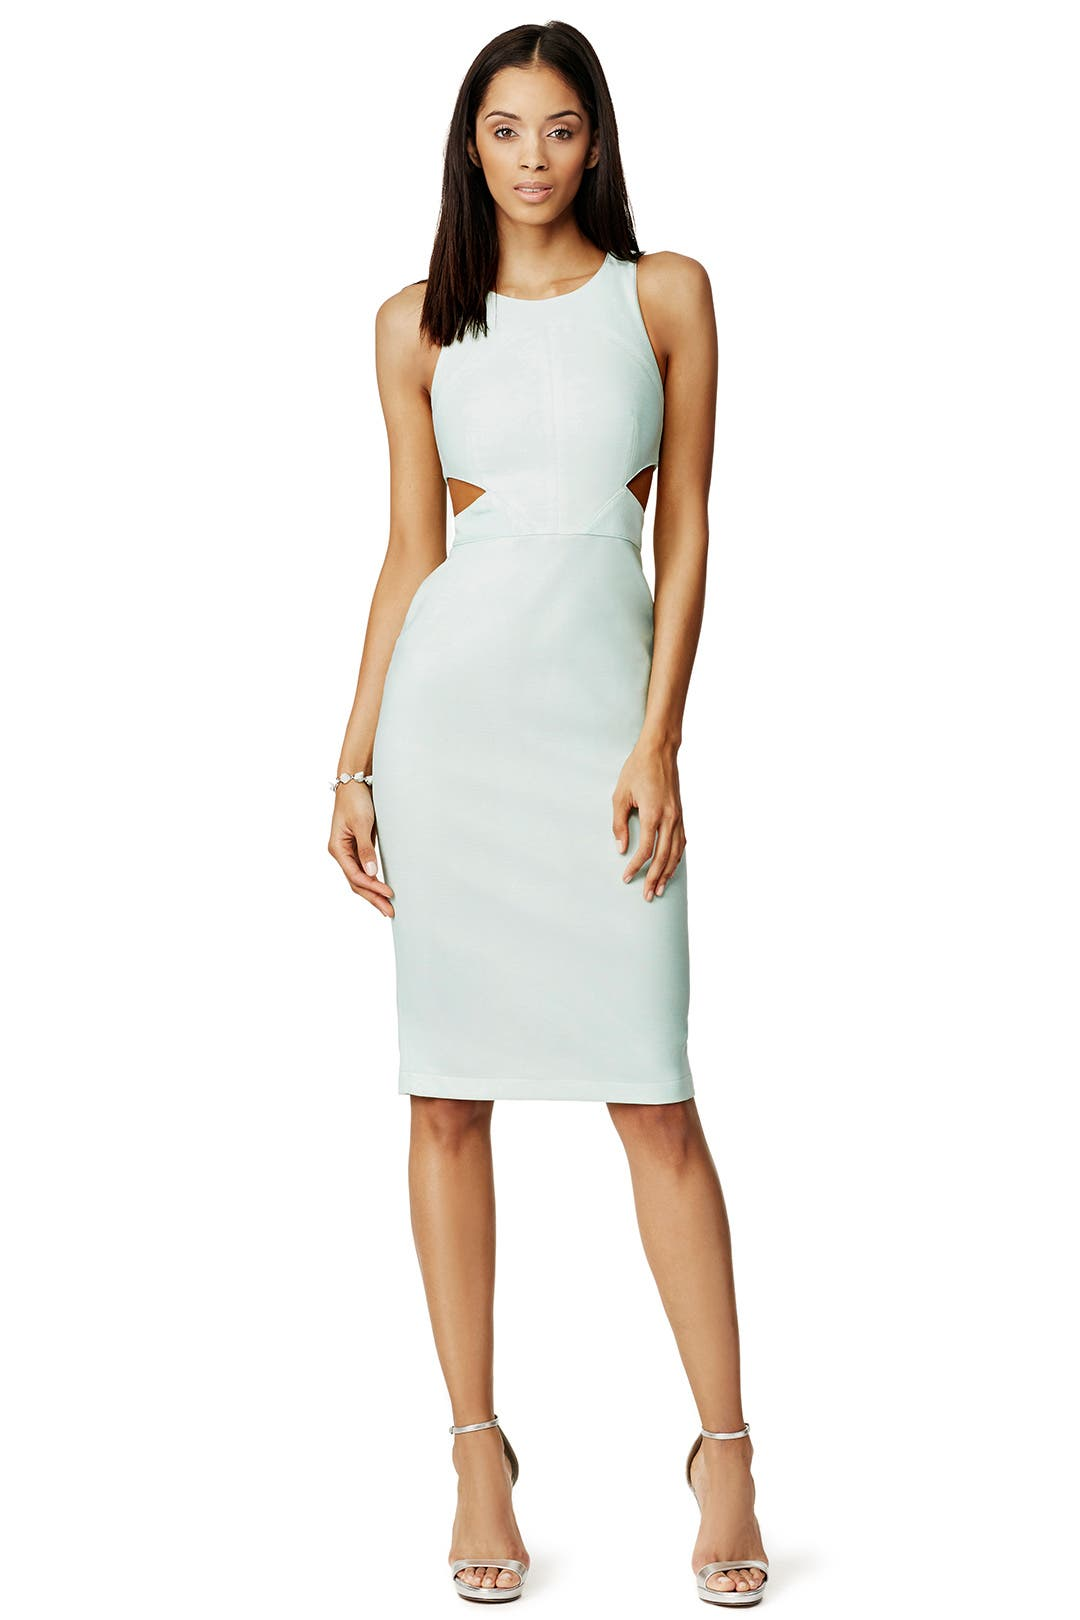 Graduation Dresses | Rent the Runway